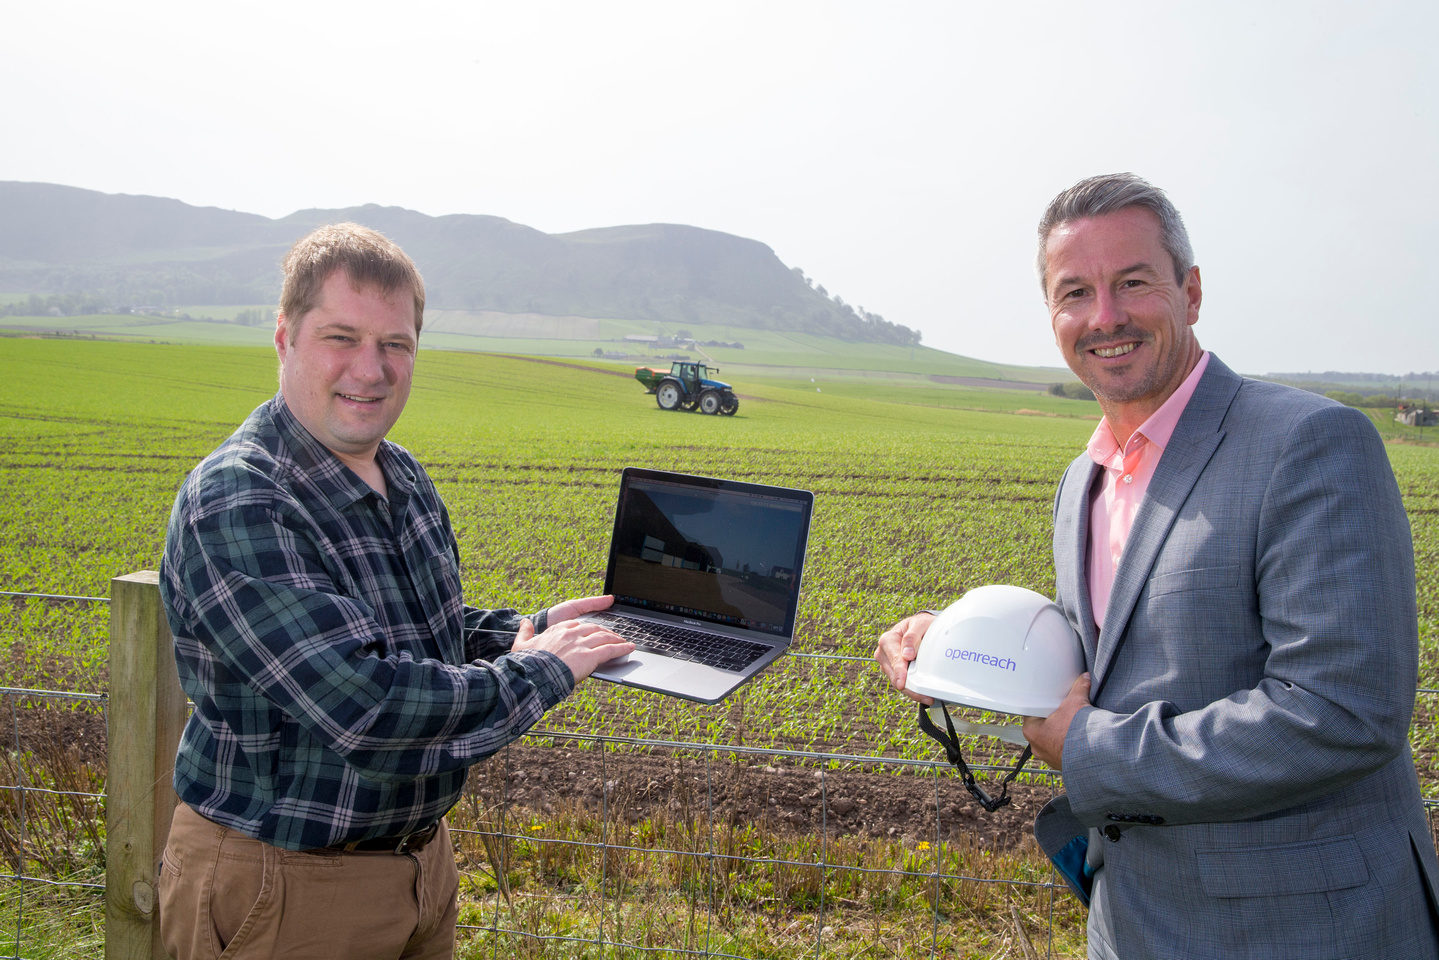 Classlochie farm resident Andrew Mitchell with Robert Thorburn, partnership director at Openreach.